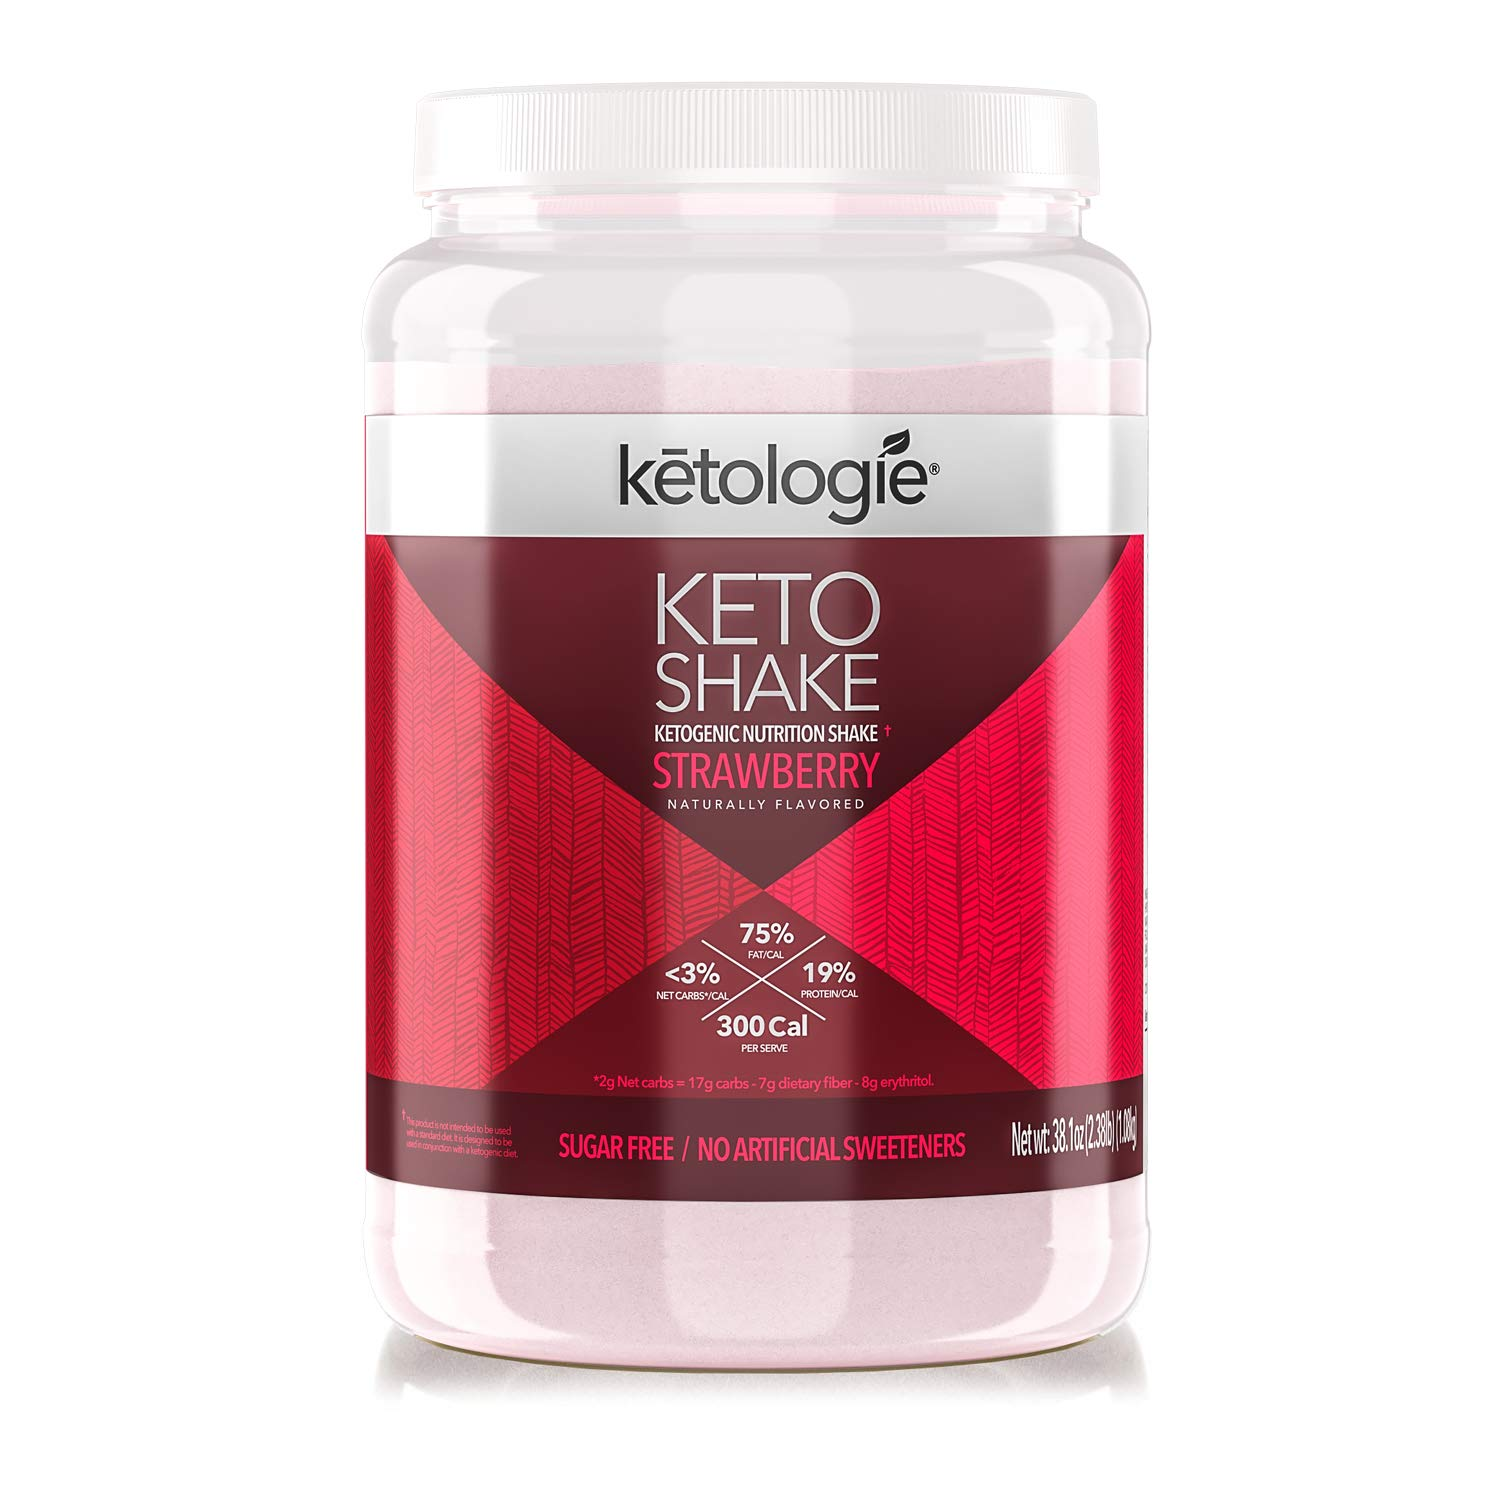 Ketologie Ultra Low Carb Protein Shake, High-Fat Keto Meal Replacement (Strawberry) by Ketologie